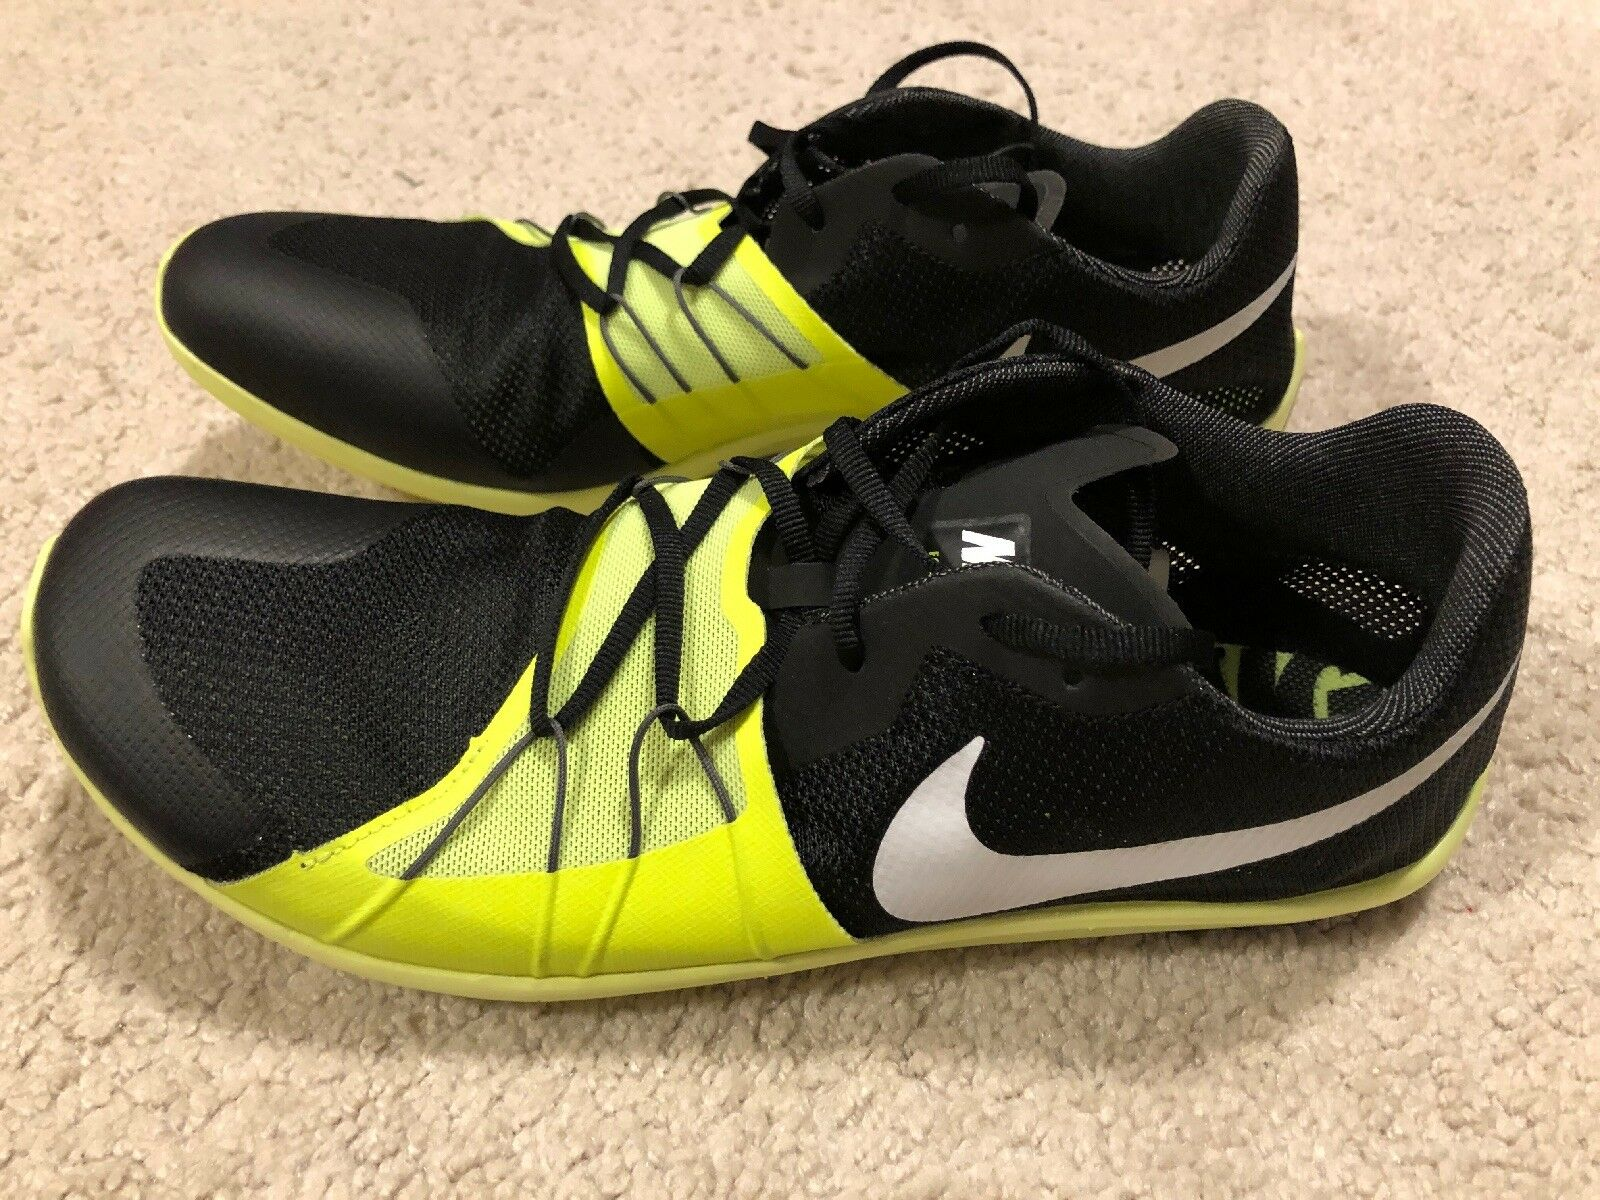 NWOB Nike Zoom Forever XC 5 Track Cross Country shoes Men's 11.5 Black Neon